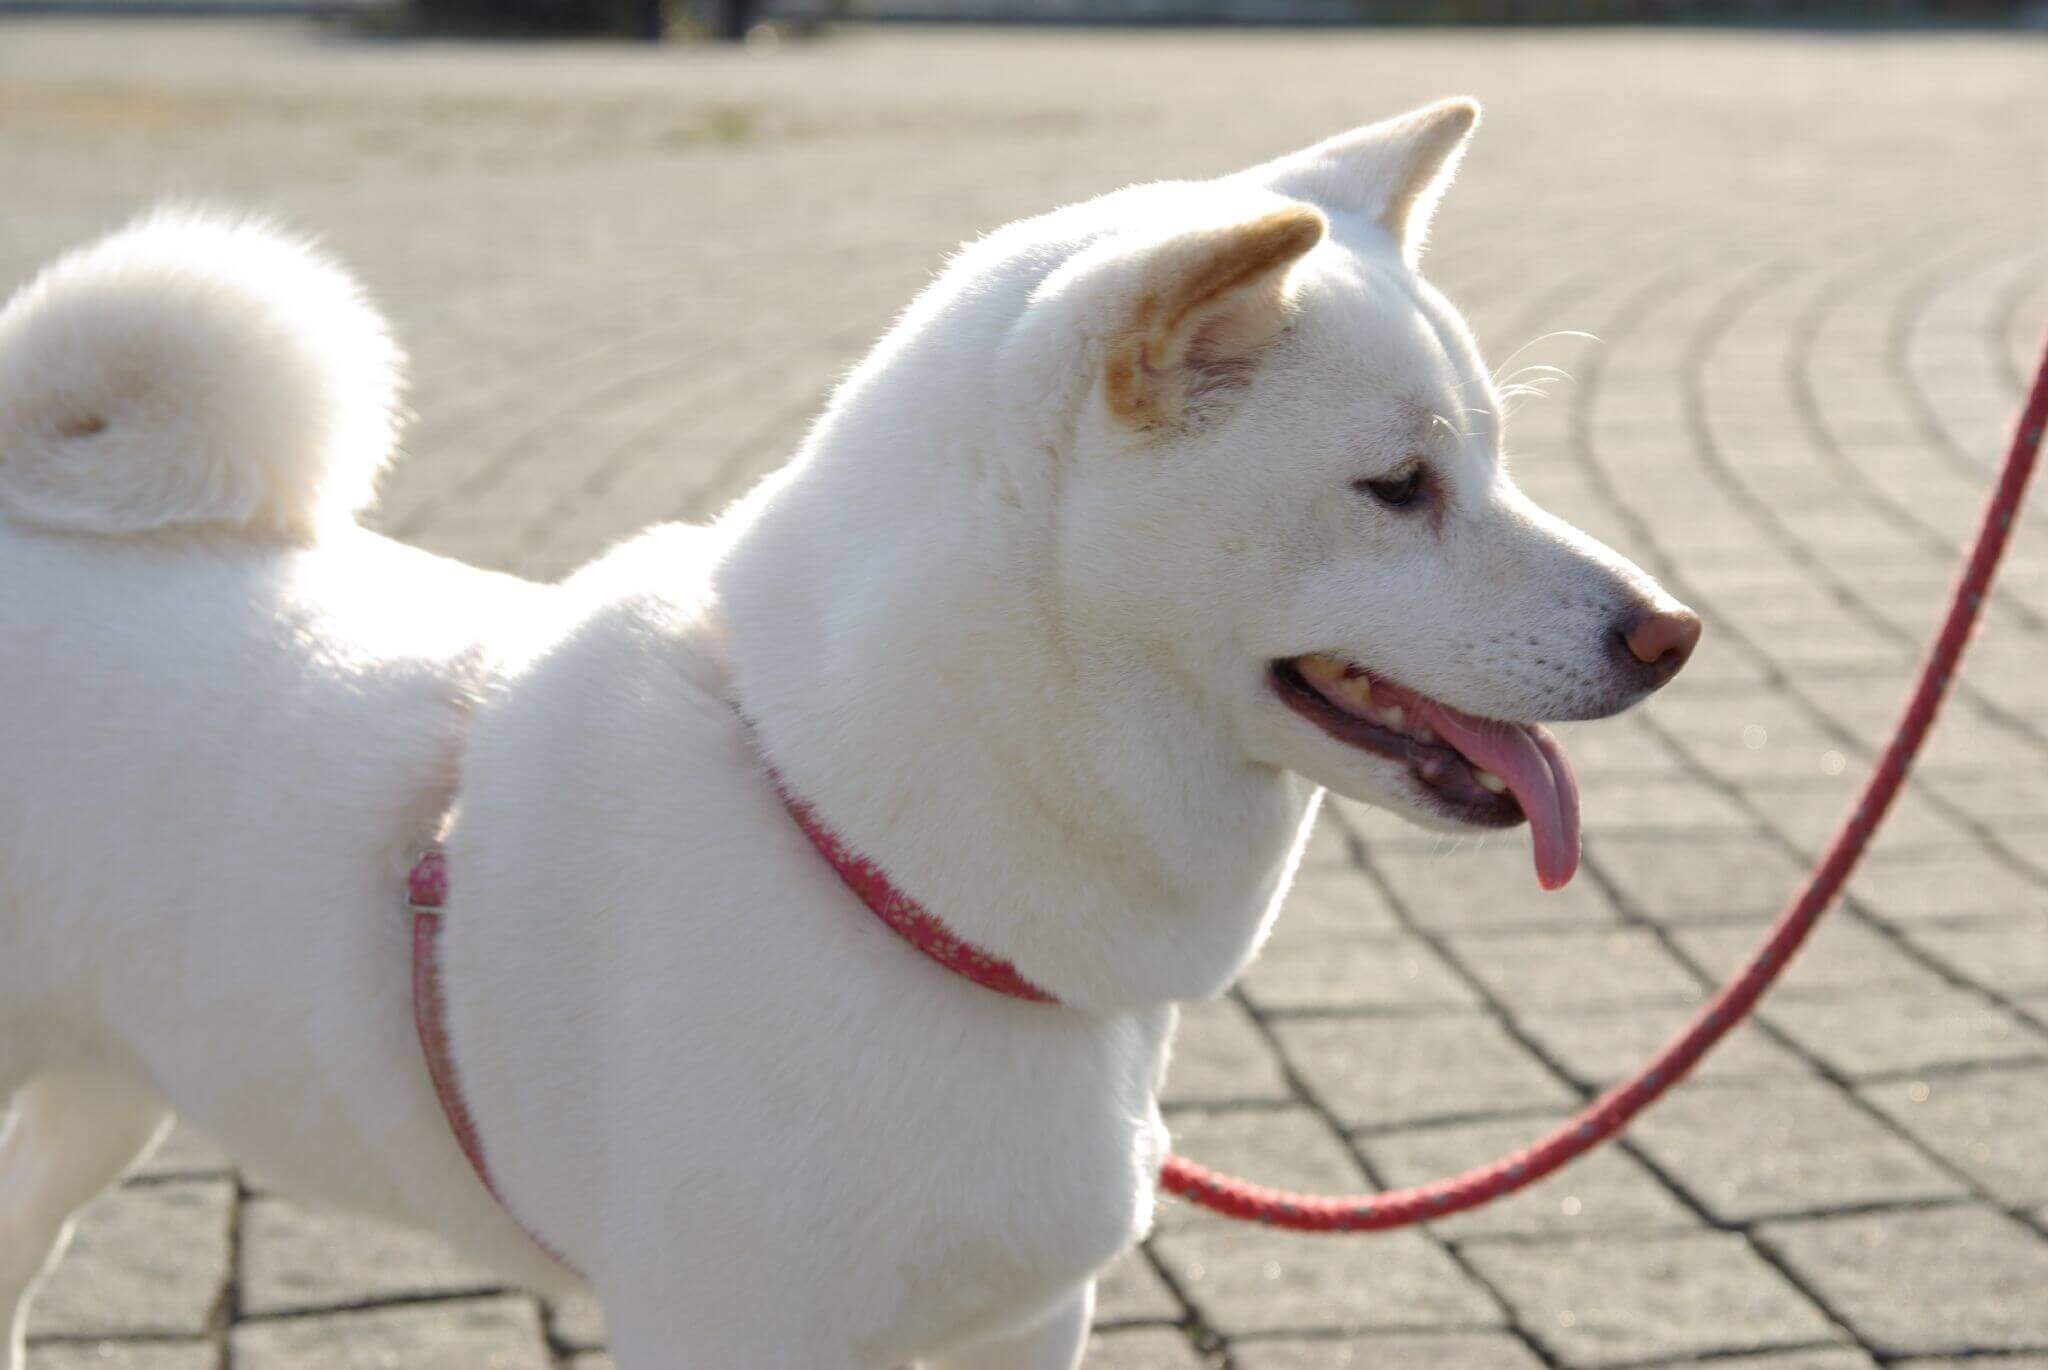 A white dog on a leash.